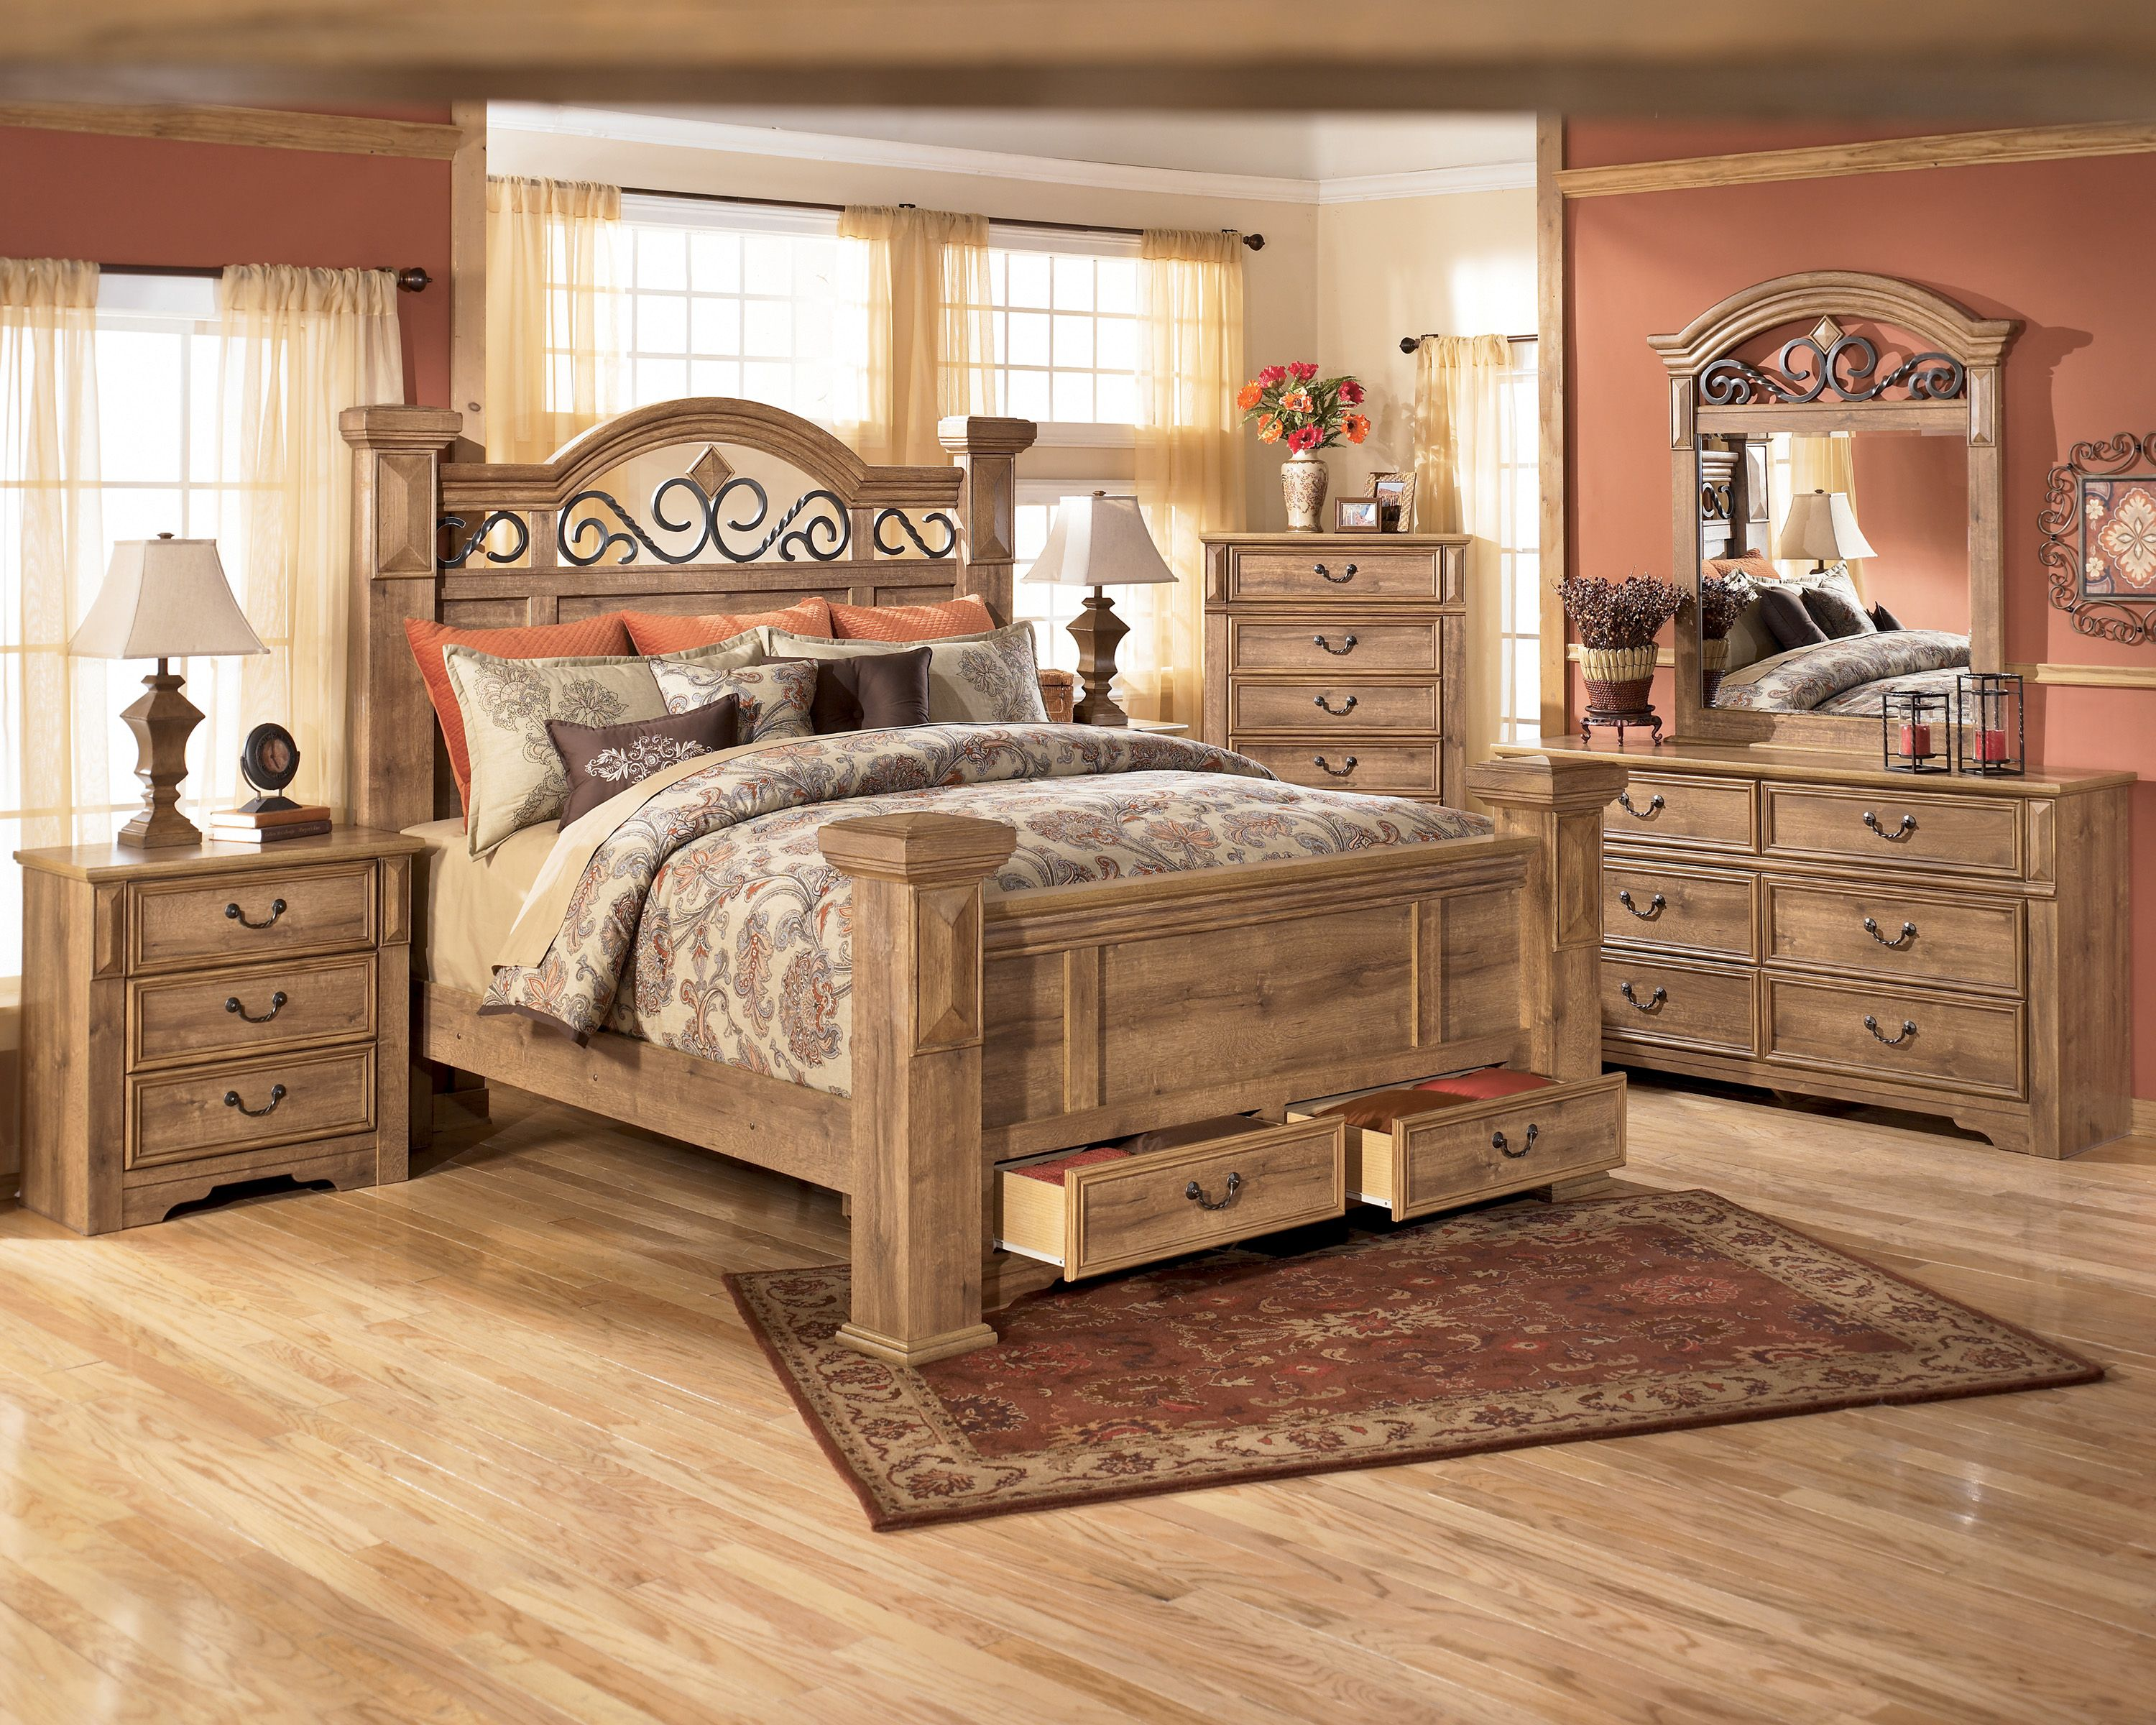 Best King Size Bed Set Rosalinda | King Beds | Pinterest ...